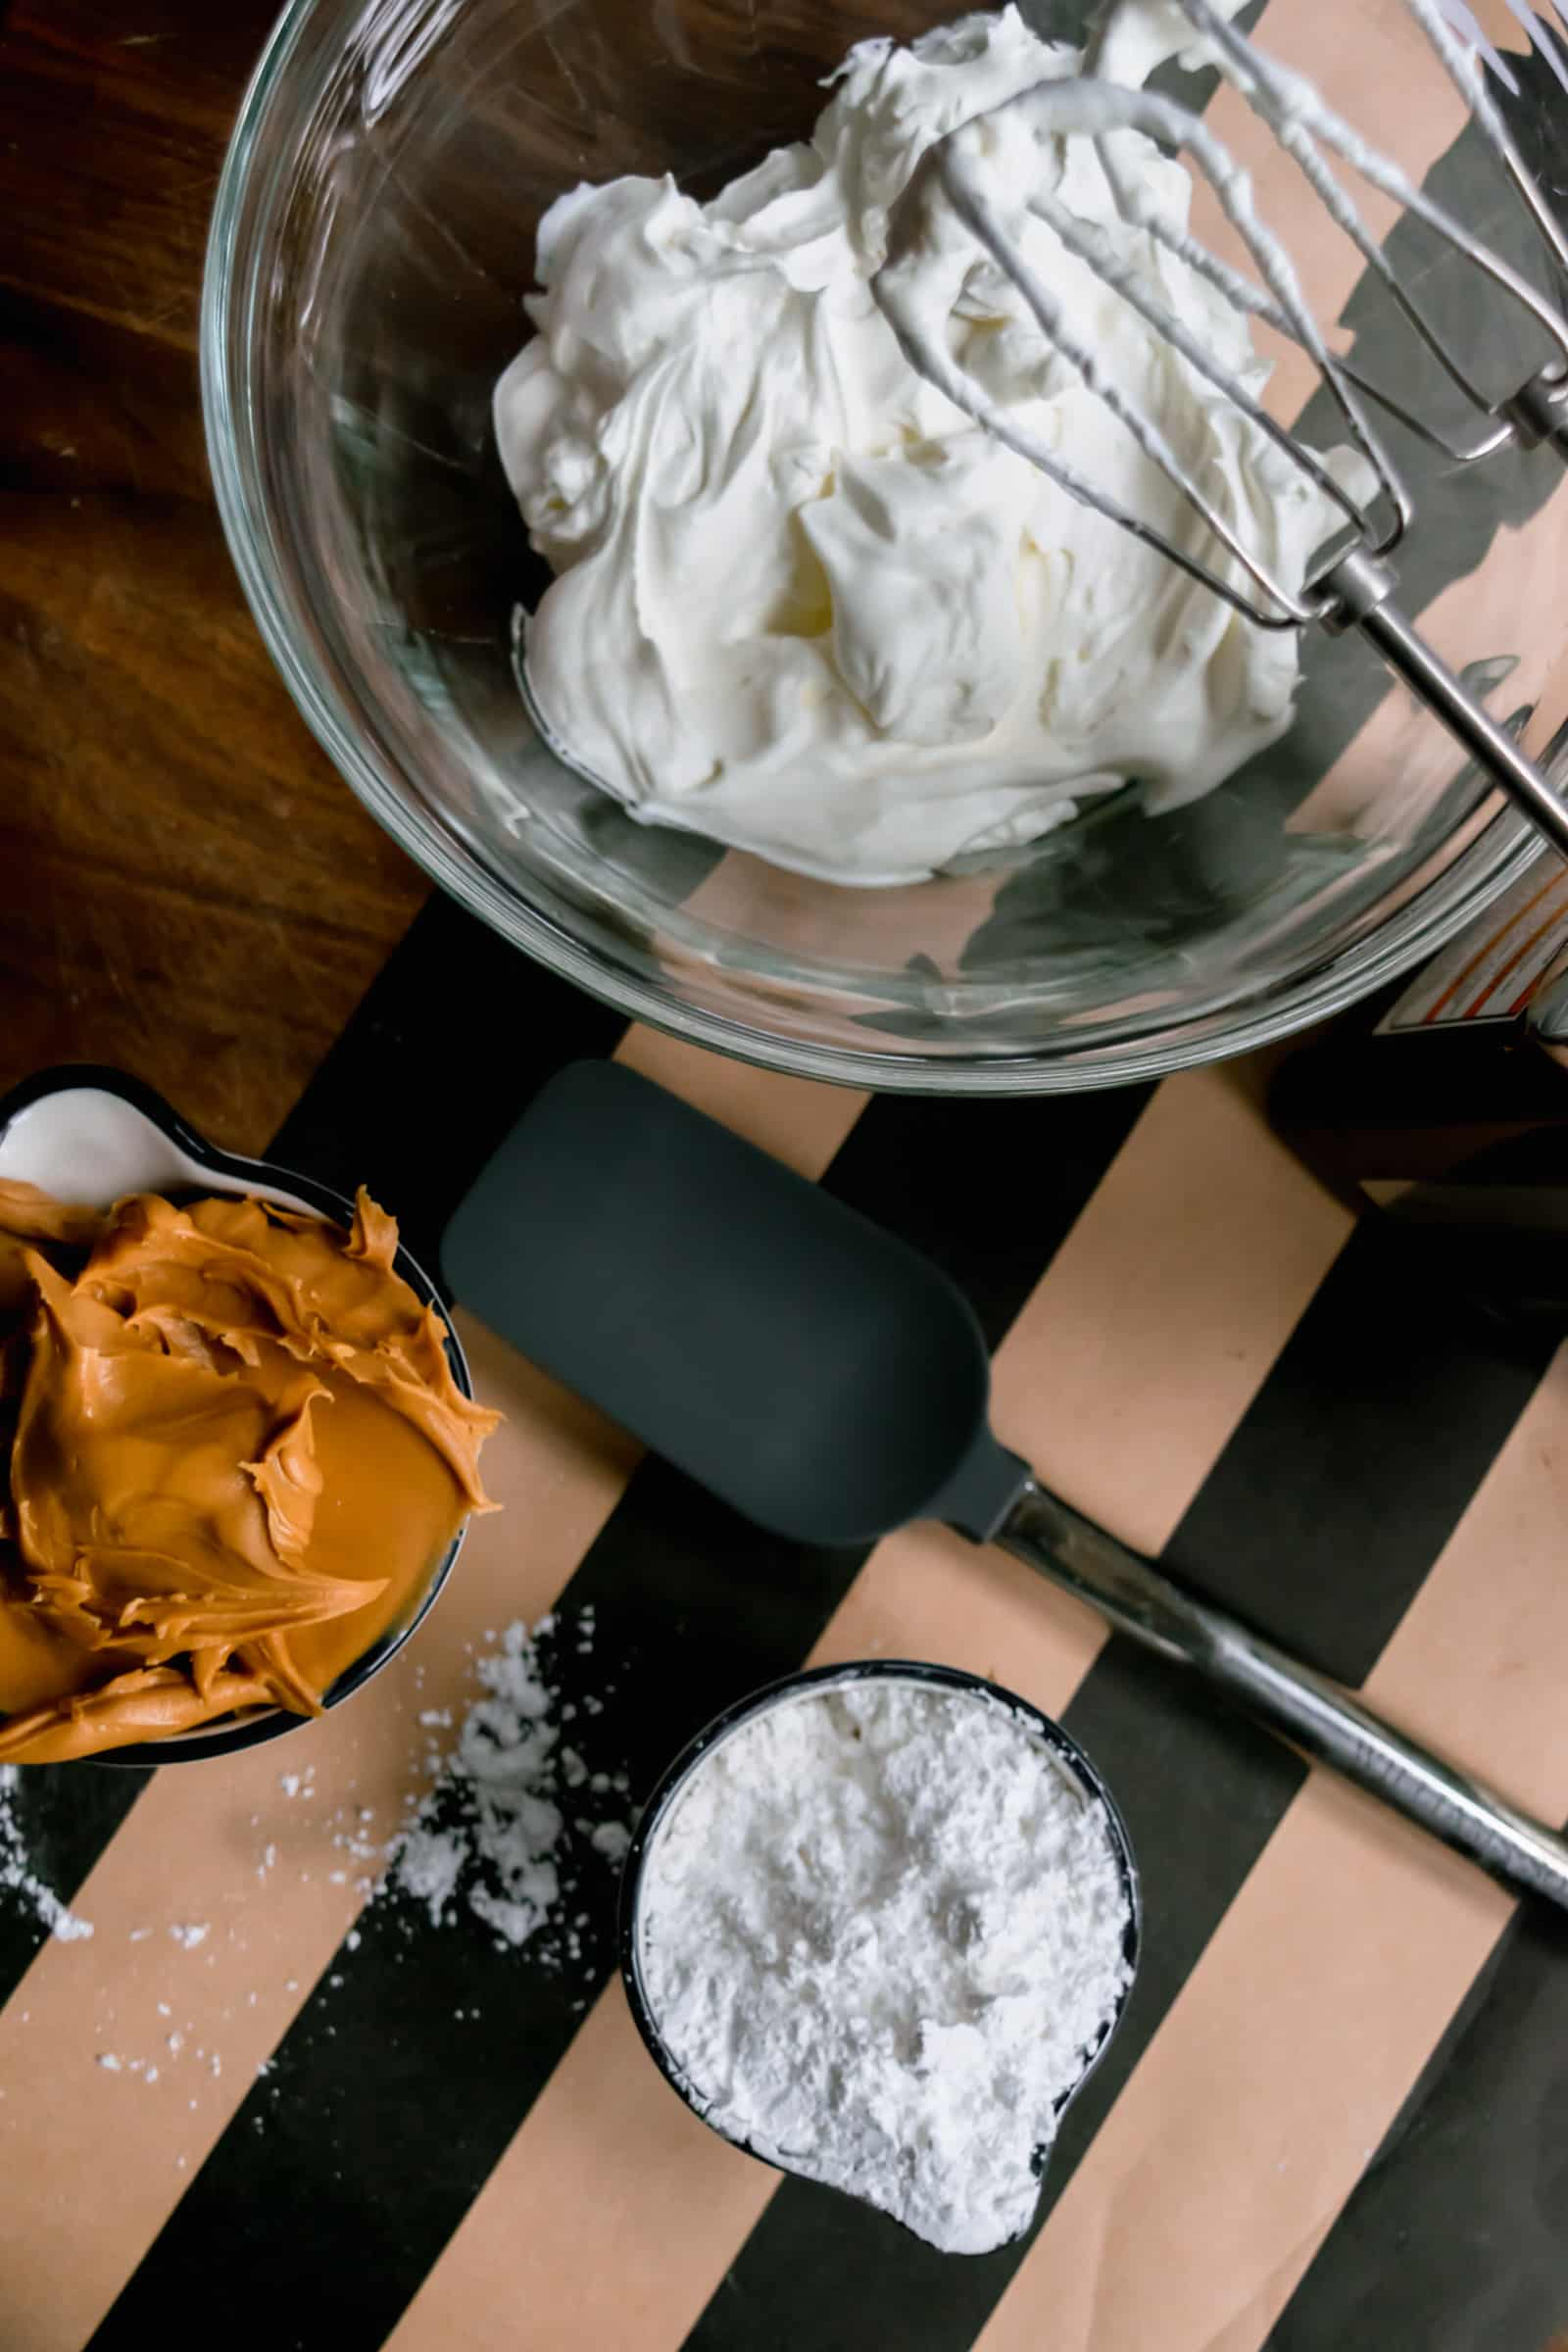 whipped heavy cream in a glass bowl with mixer beaters and a small cup of peanut butter and a small cup of powdered sugar and a black spatula on a black and brown striped runner